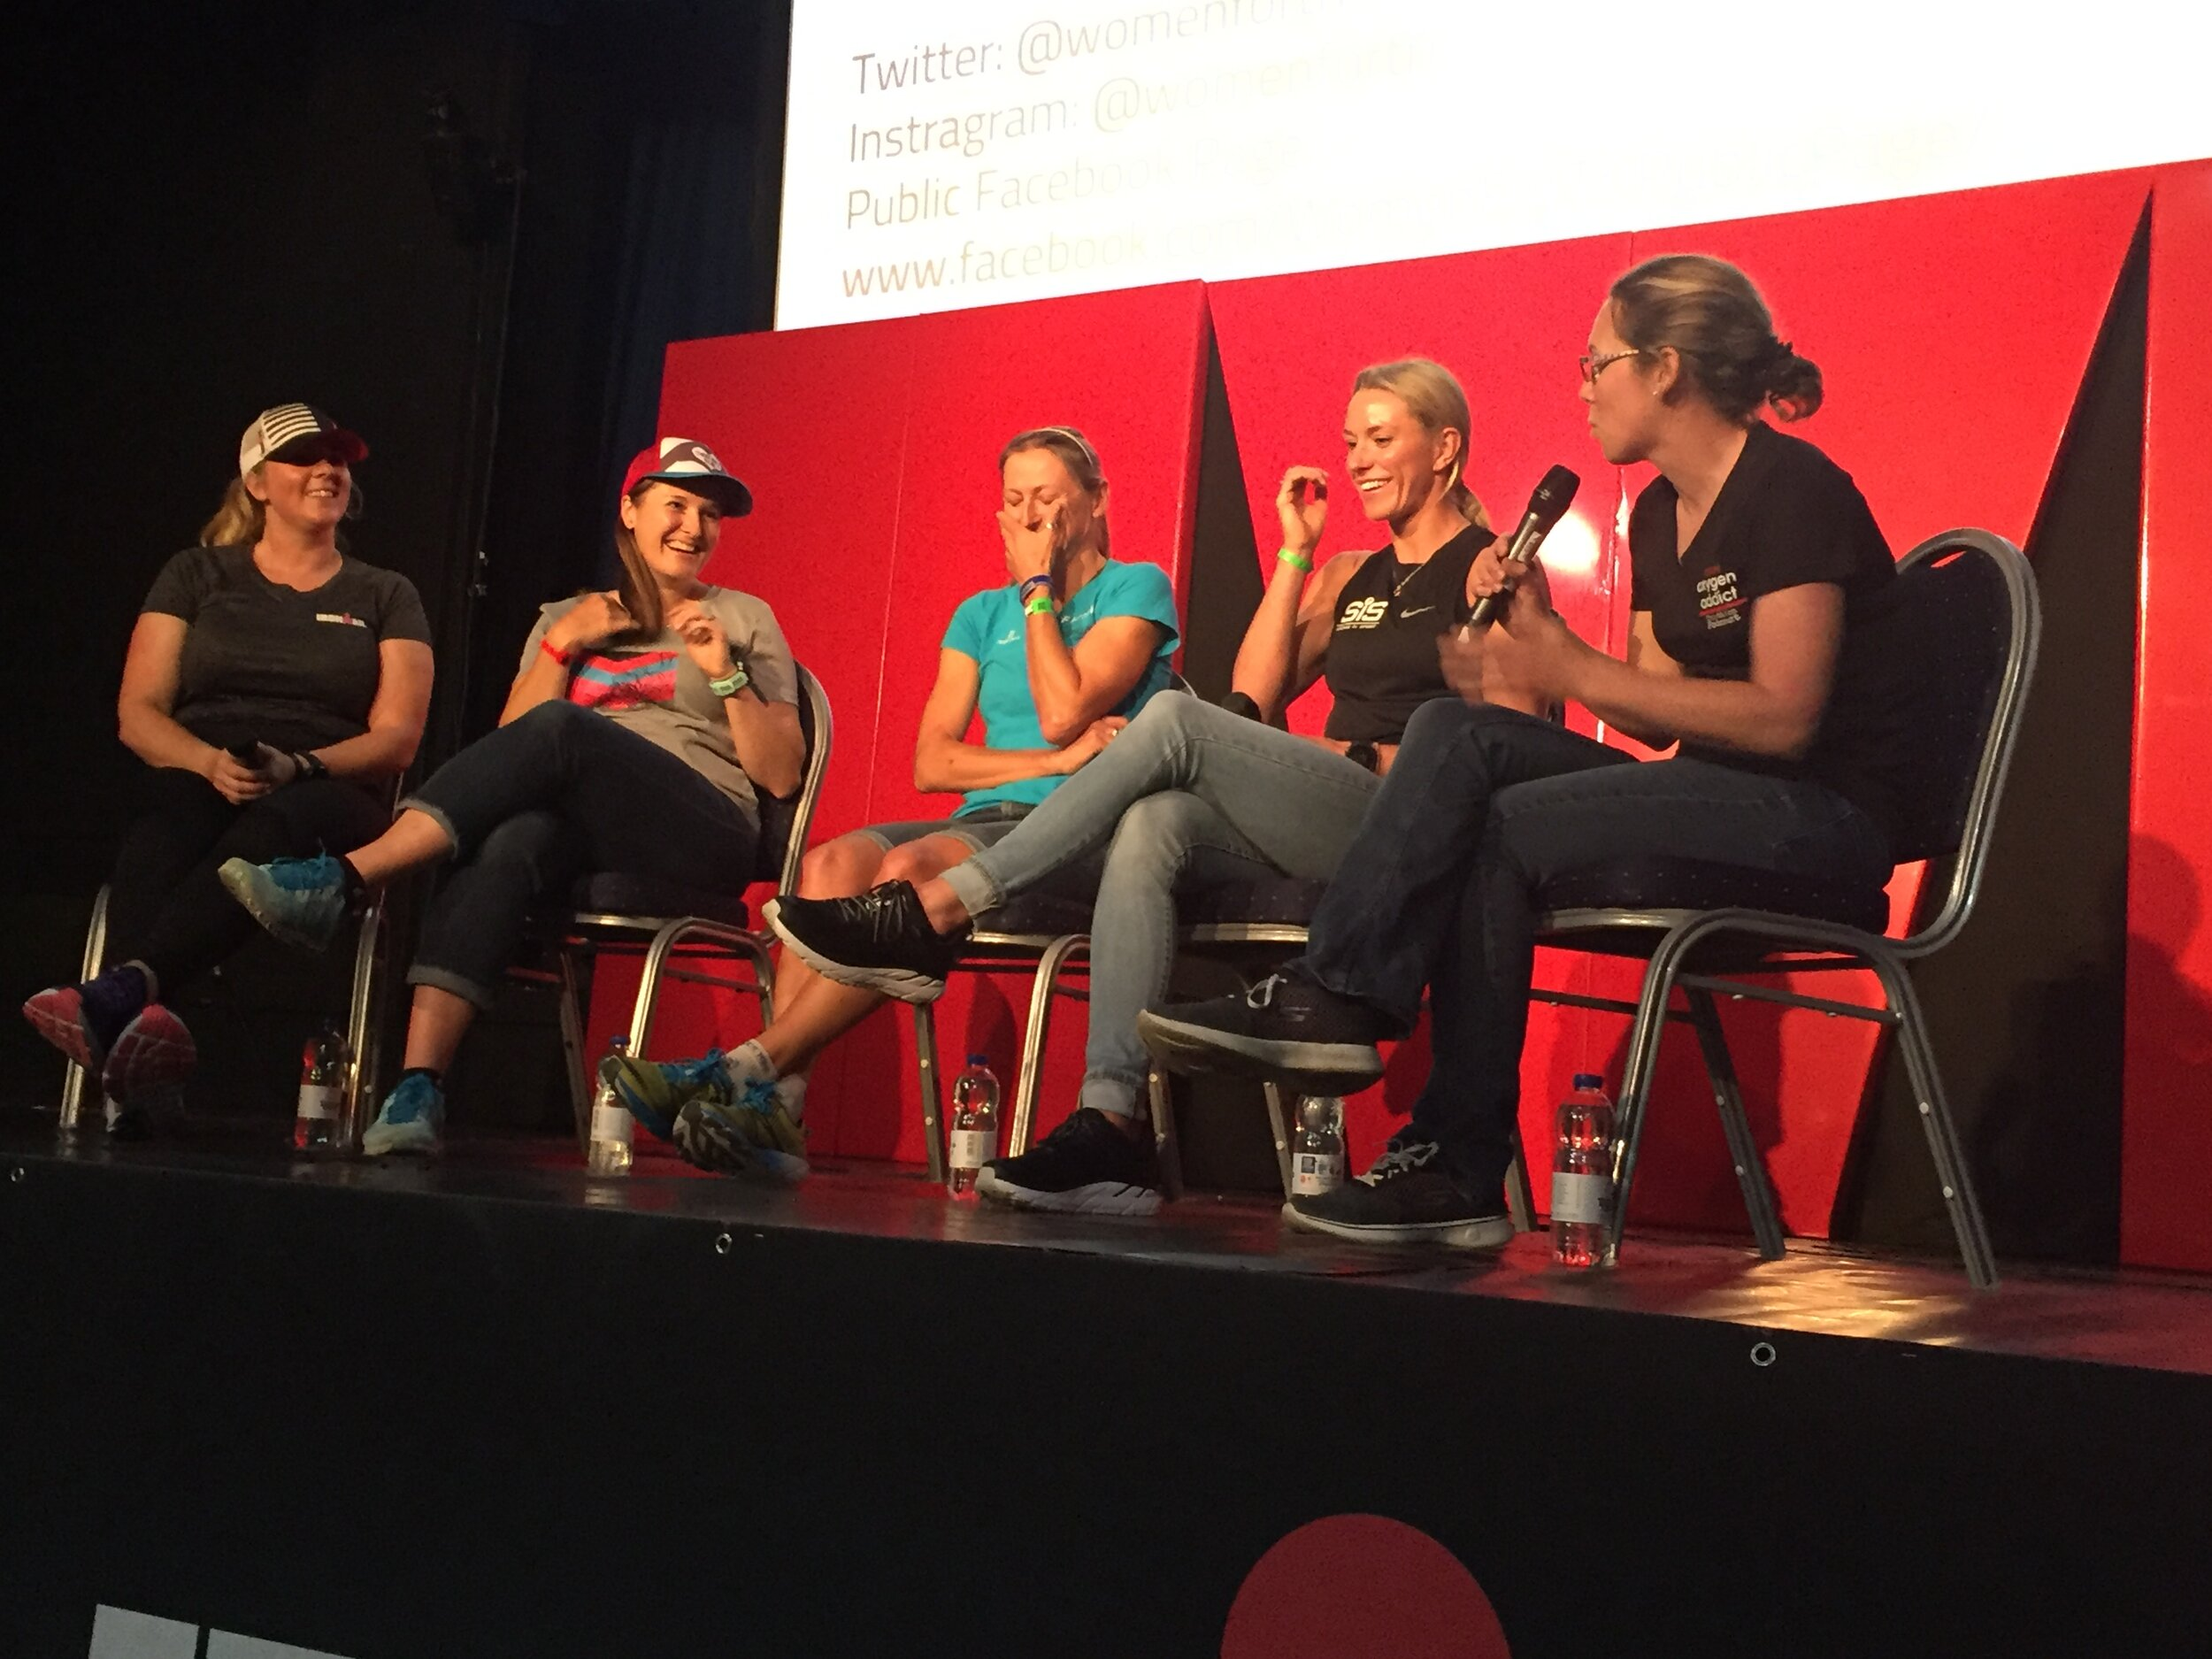 New experiences: Co-hosting the Women for Tri panel ahead of Ironman Wales 2019